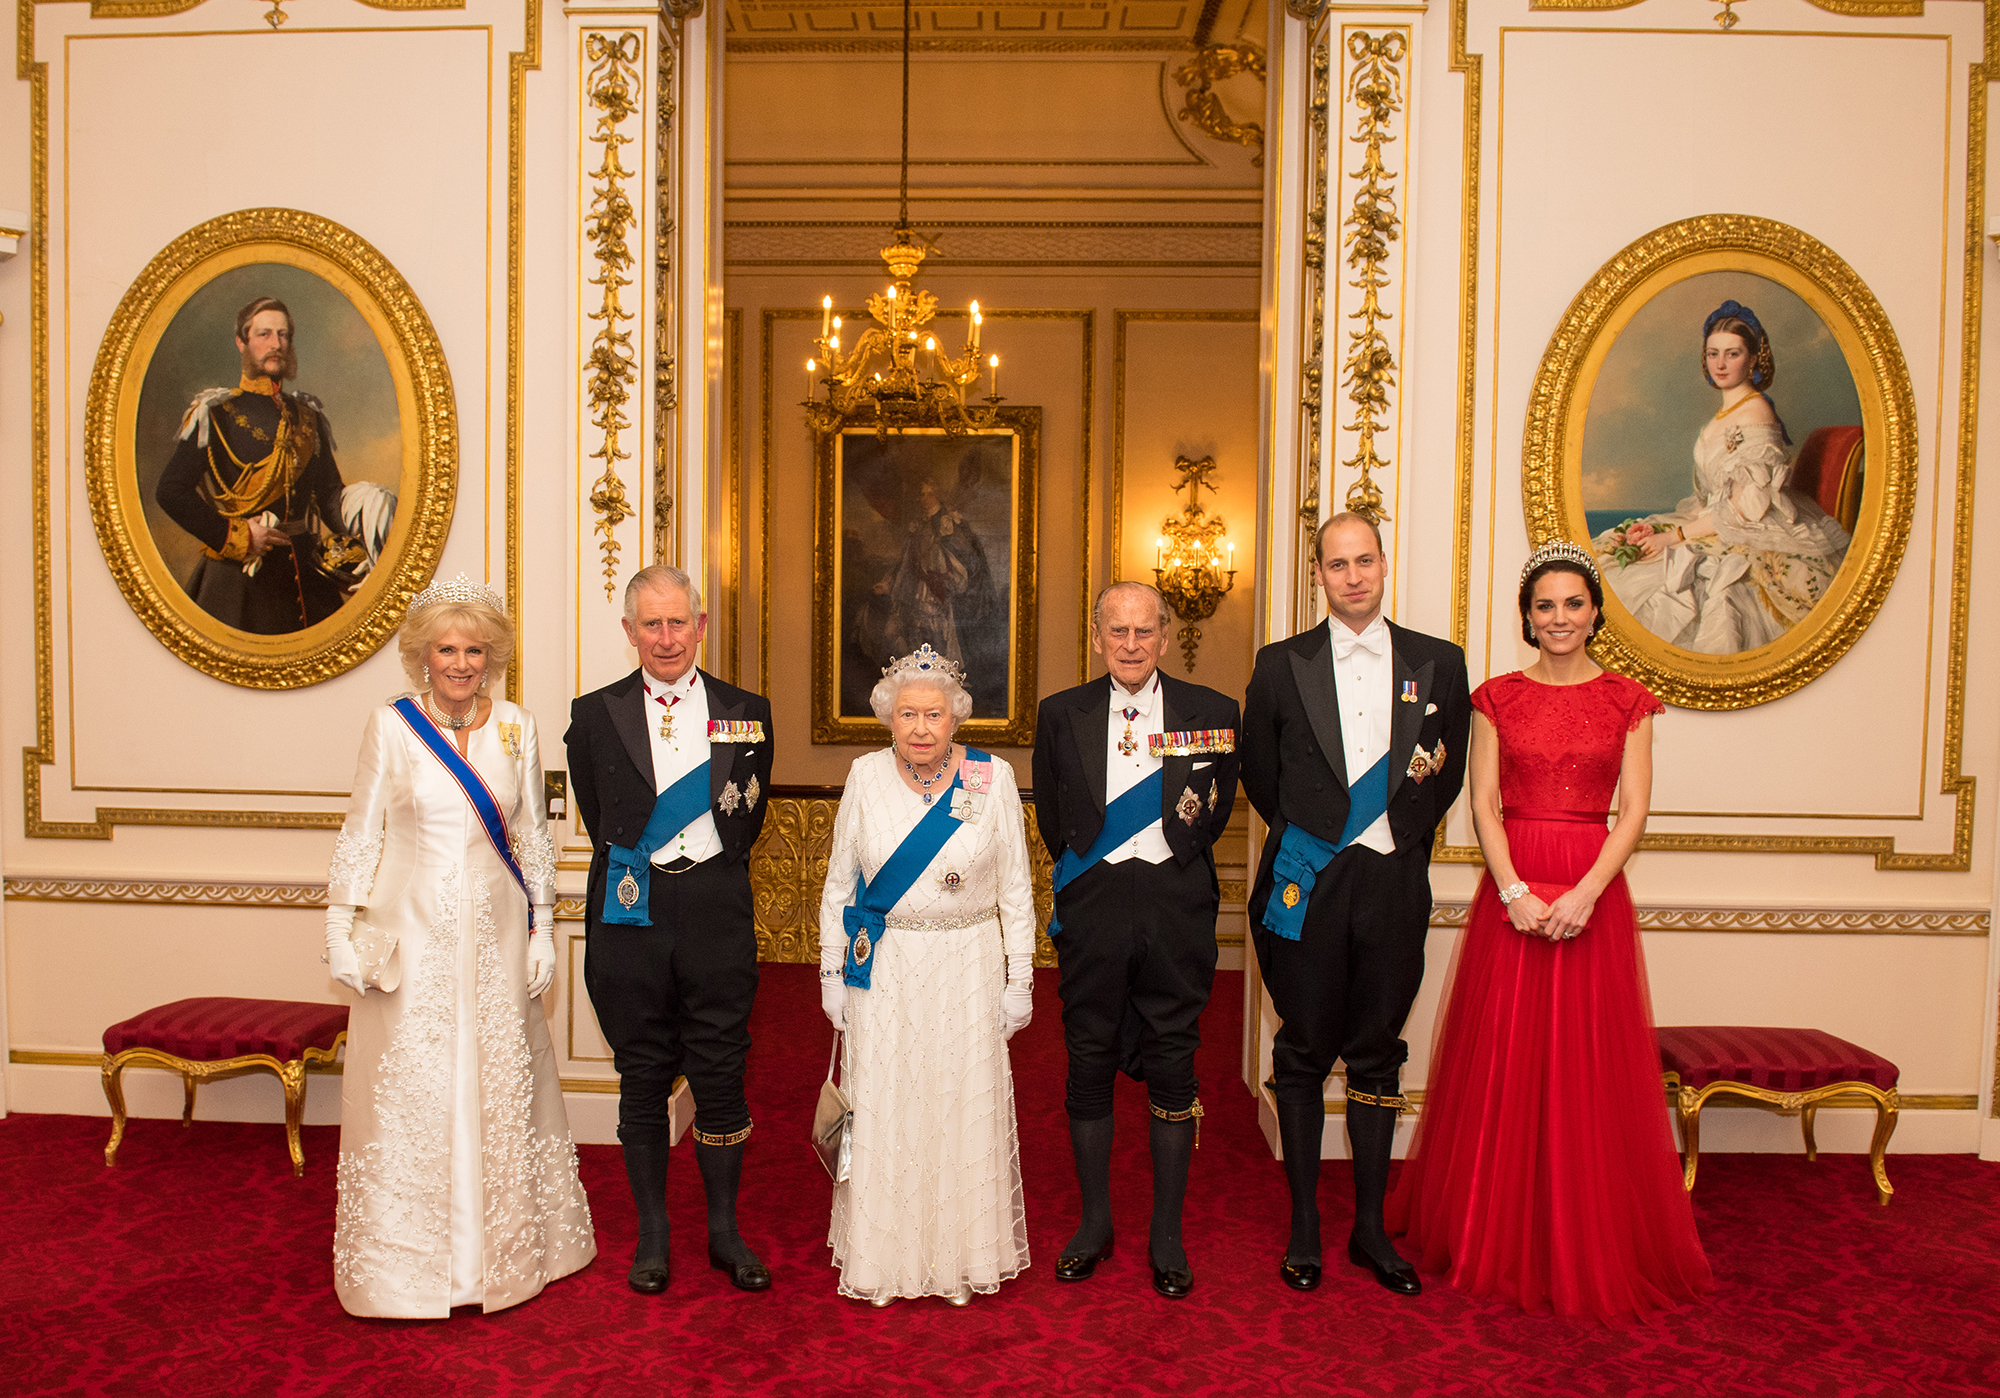 Royal Family Food Facts - LONDON, UNITED KINGDOM – DECEMBER 8: (L-R) Camilla, Duchess of Cornwall, Prince Charles, Prince of Wales, Queen Elizabeth II, Prince Philip, Duke of Edinburgh, Prince William, Duke of Cambridge and Catherine, Duchess of Cambridge arrive for the annual evening reception for members of the Diplomatic Corps at Buckingham Palace on December 8, 2016 in London, […]